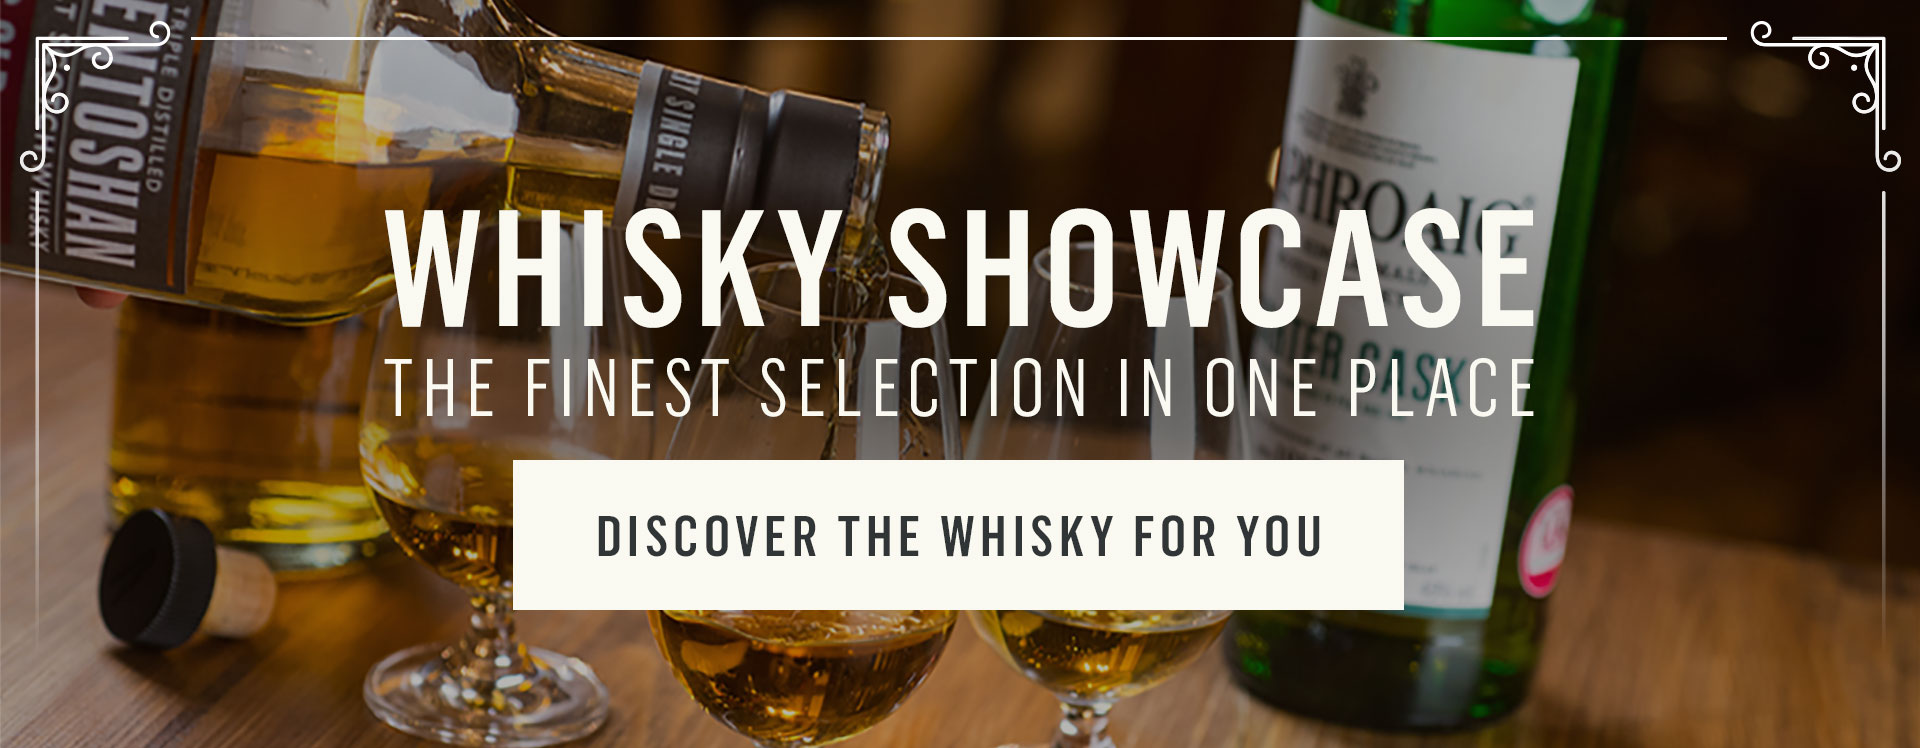 Whisky Showcase at The Crown Liquor Saloon in Belfast